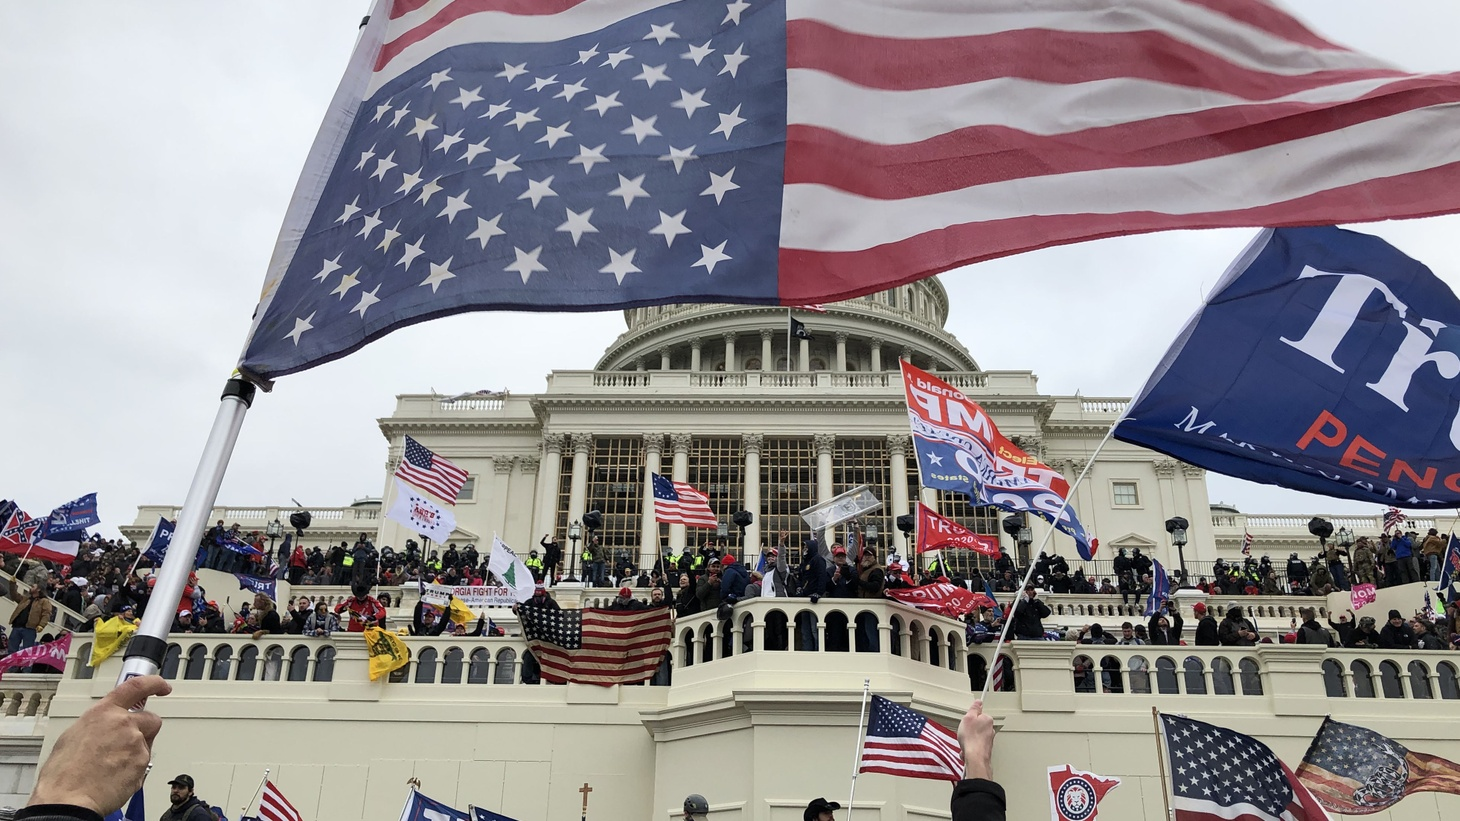 Californians: How are you feeling after insurrection at US Capitol? Let us  know